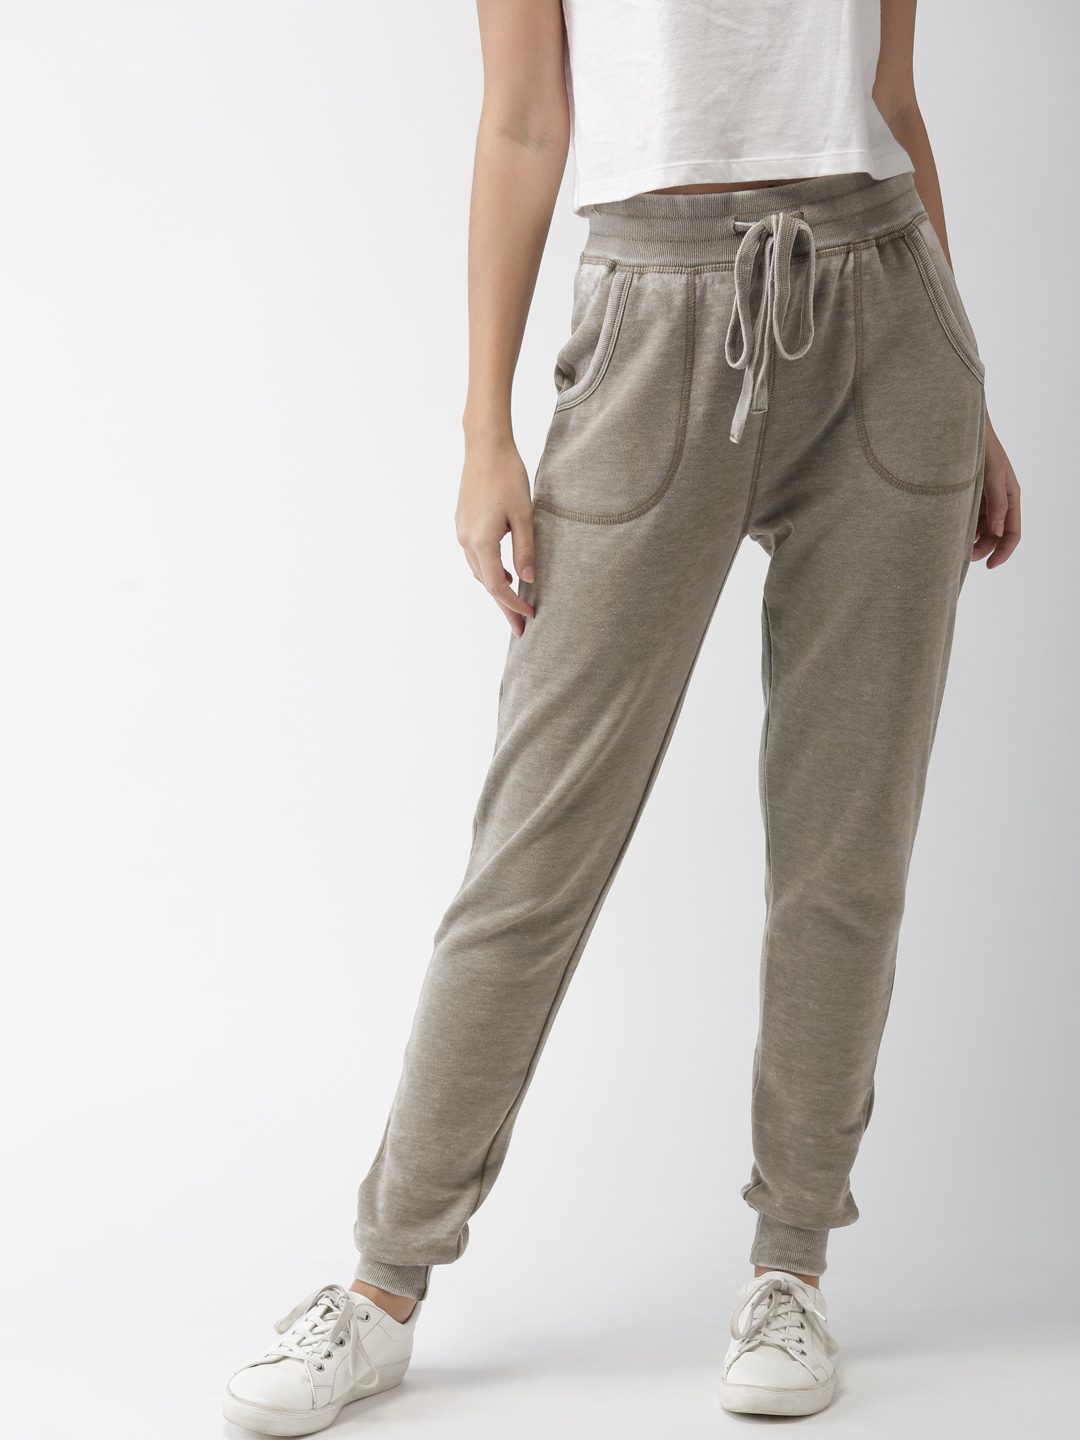 12975b8eb3933 Trousers India | Buy Fashion Trousers for Men, Women Online in India